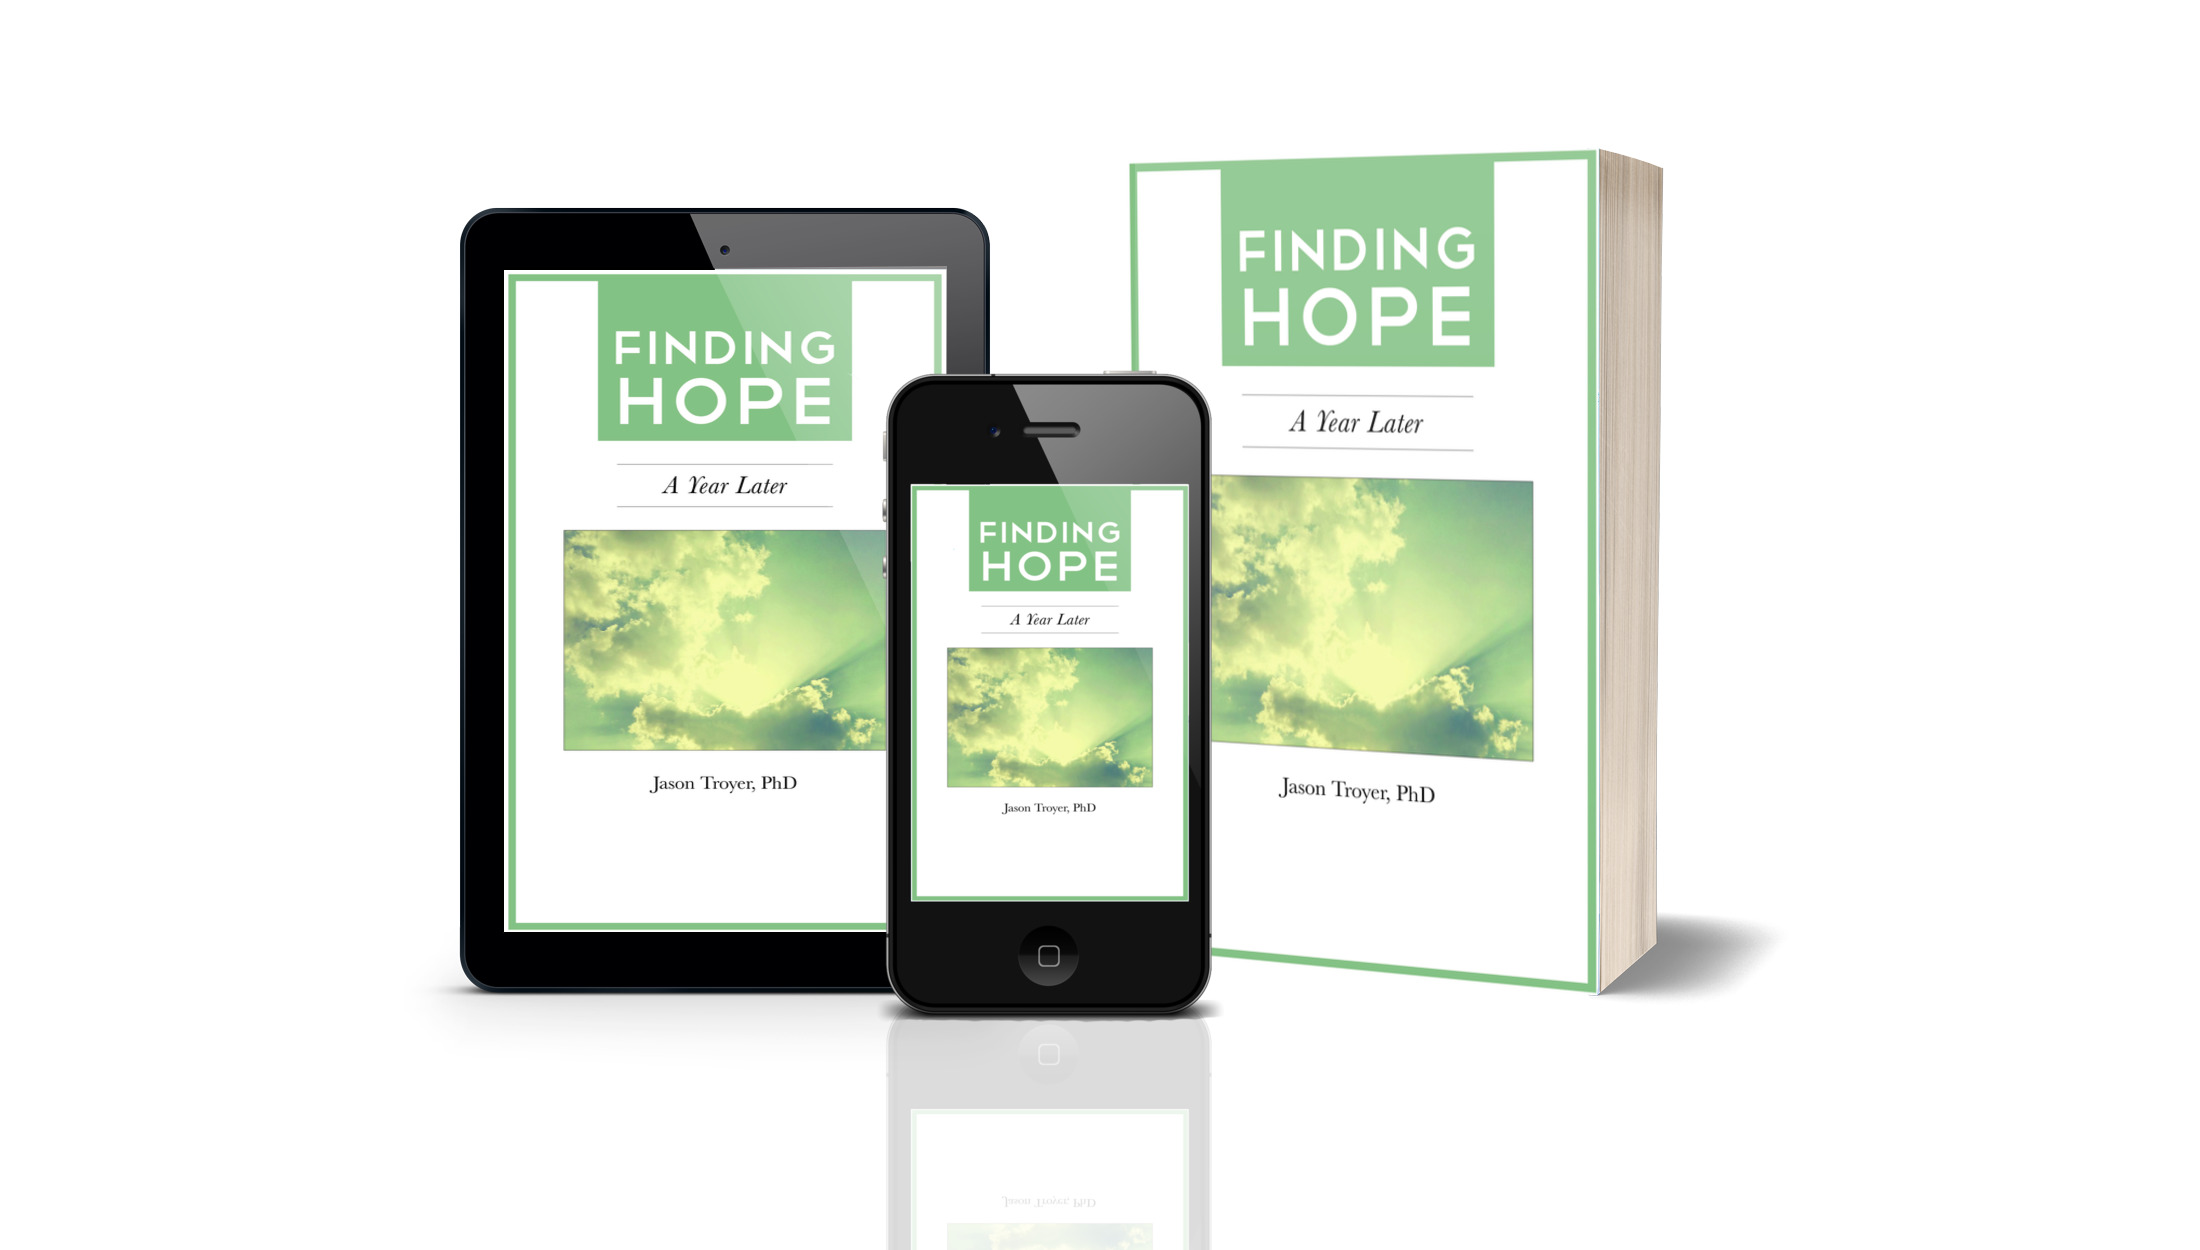 Finding Hope: A Year After the Loss - Click Here to Download